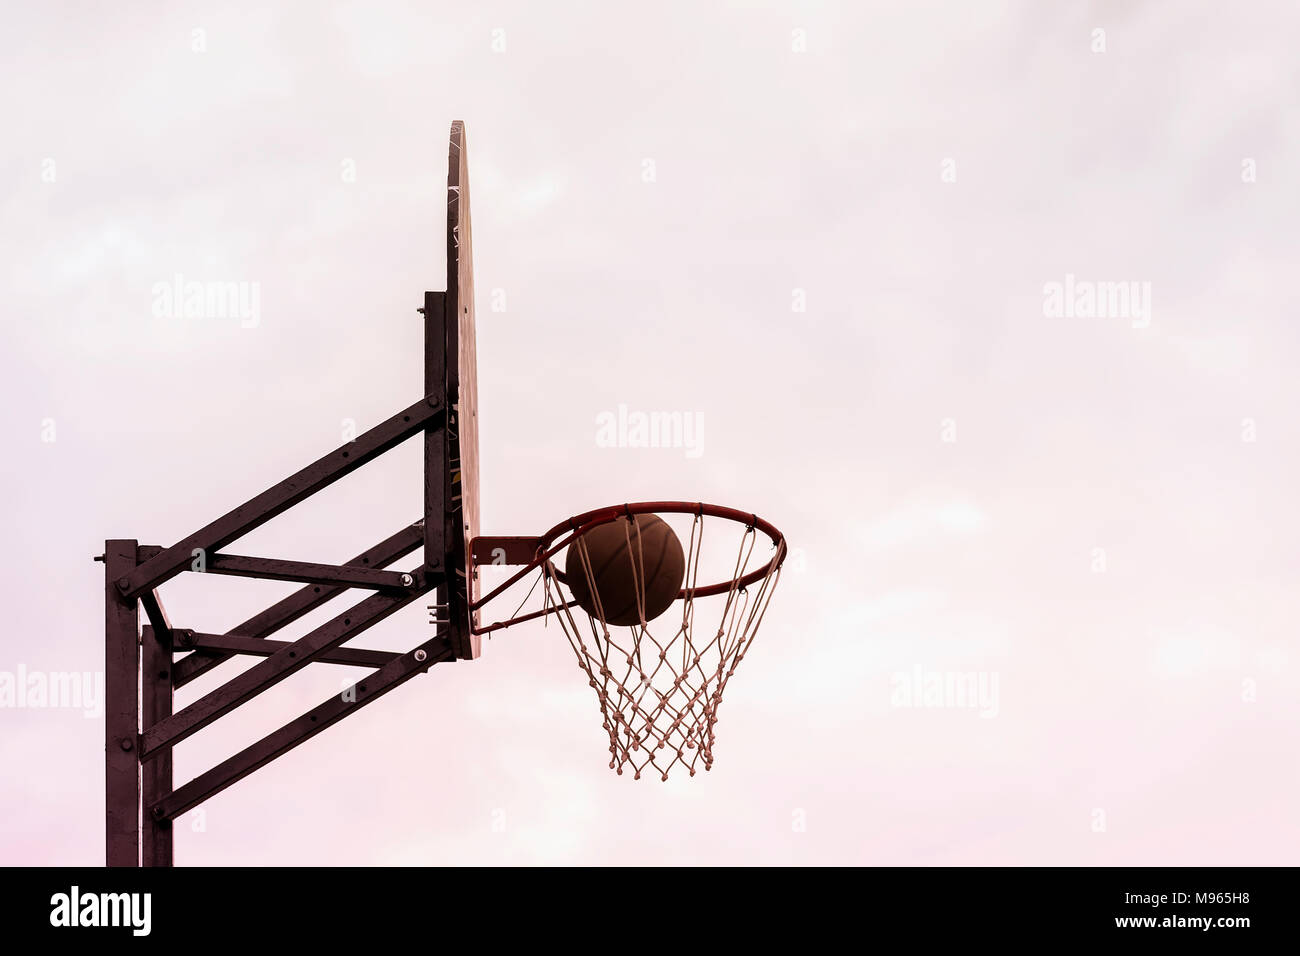 Basketball shield, ball going through basket on background of sky. Concept of sport, hit accuracy, active lifestyle. Copy space - Stock Image